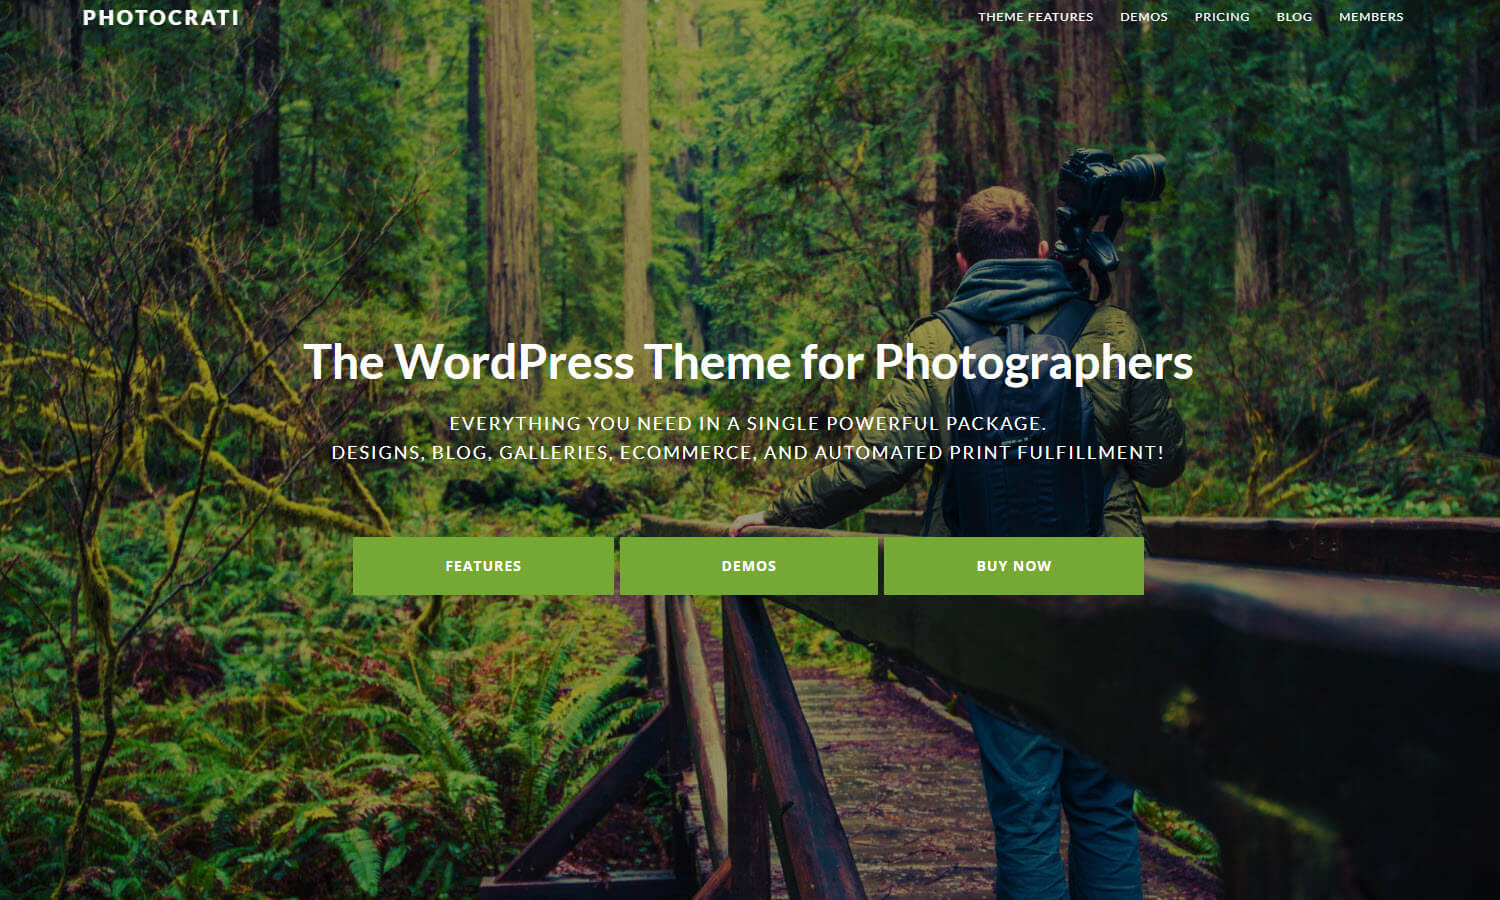 Photocrati screenshot